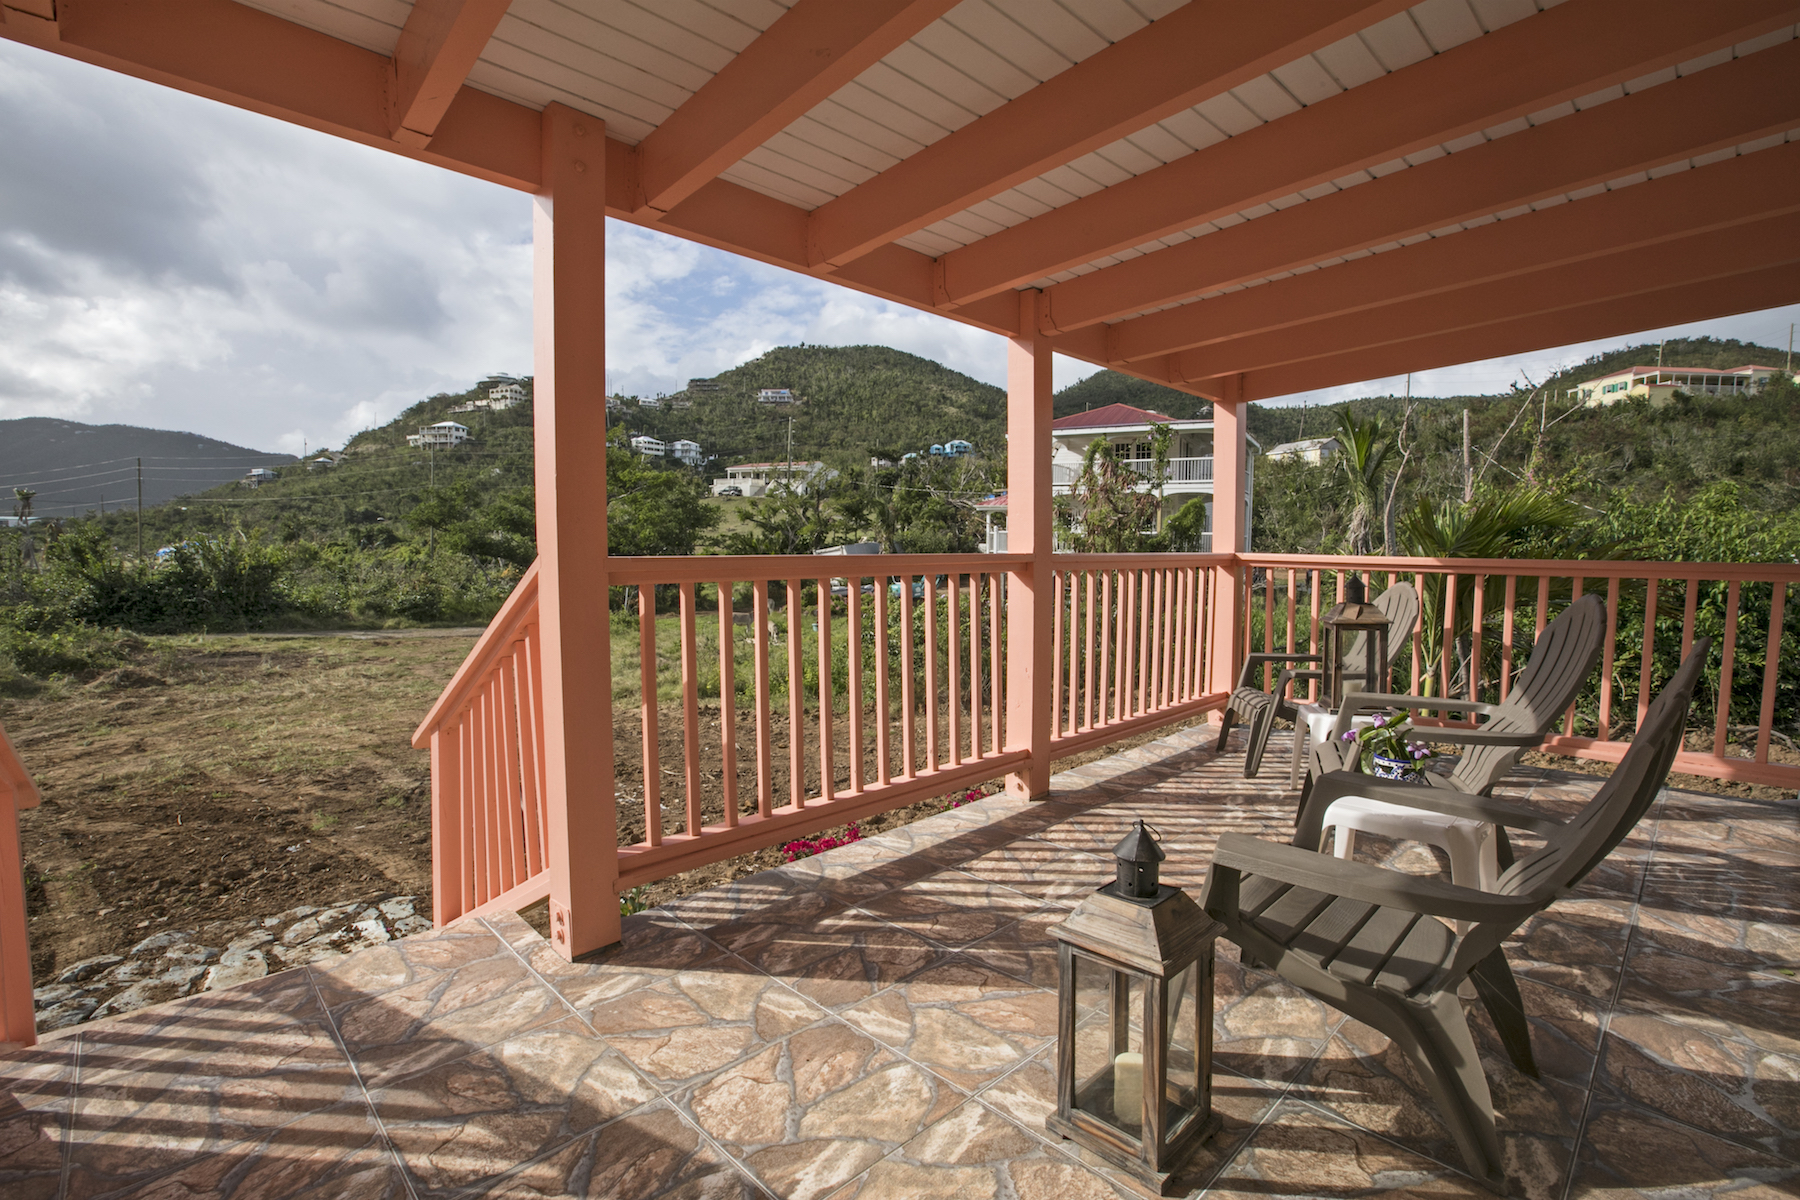 Single Family Home for Sale at 4 Estate Fortsberg 4 Estate Fortsberg St John, Virgin Islands 00830 United States Virgin Islands